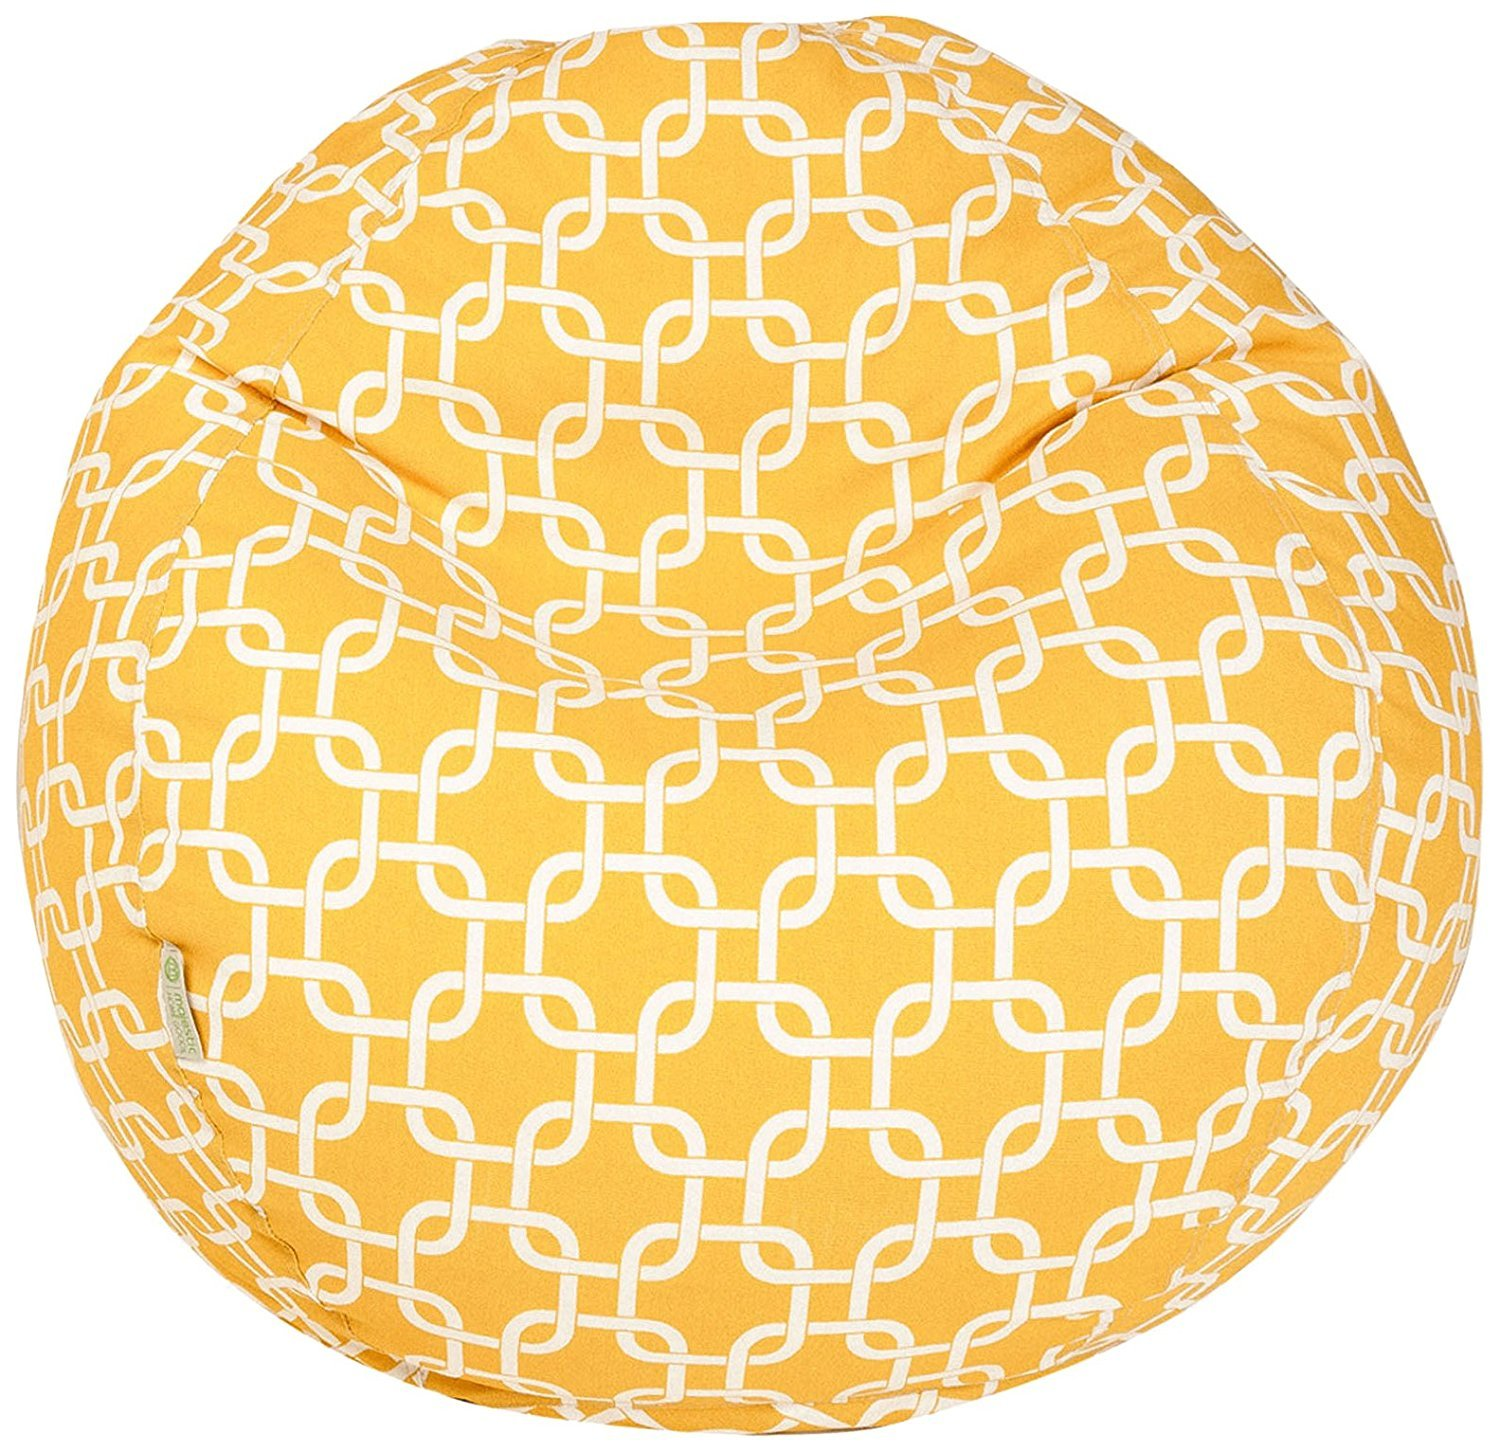 Majestic Home Goods Classic Bean Bag Chair - Links Giant Classic Bean Bags for Small Adults and Kids (28 x 28 x 22 Inches) (Yellow)